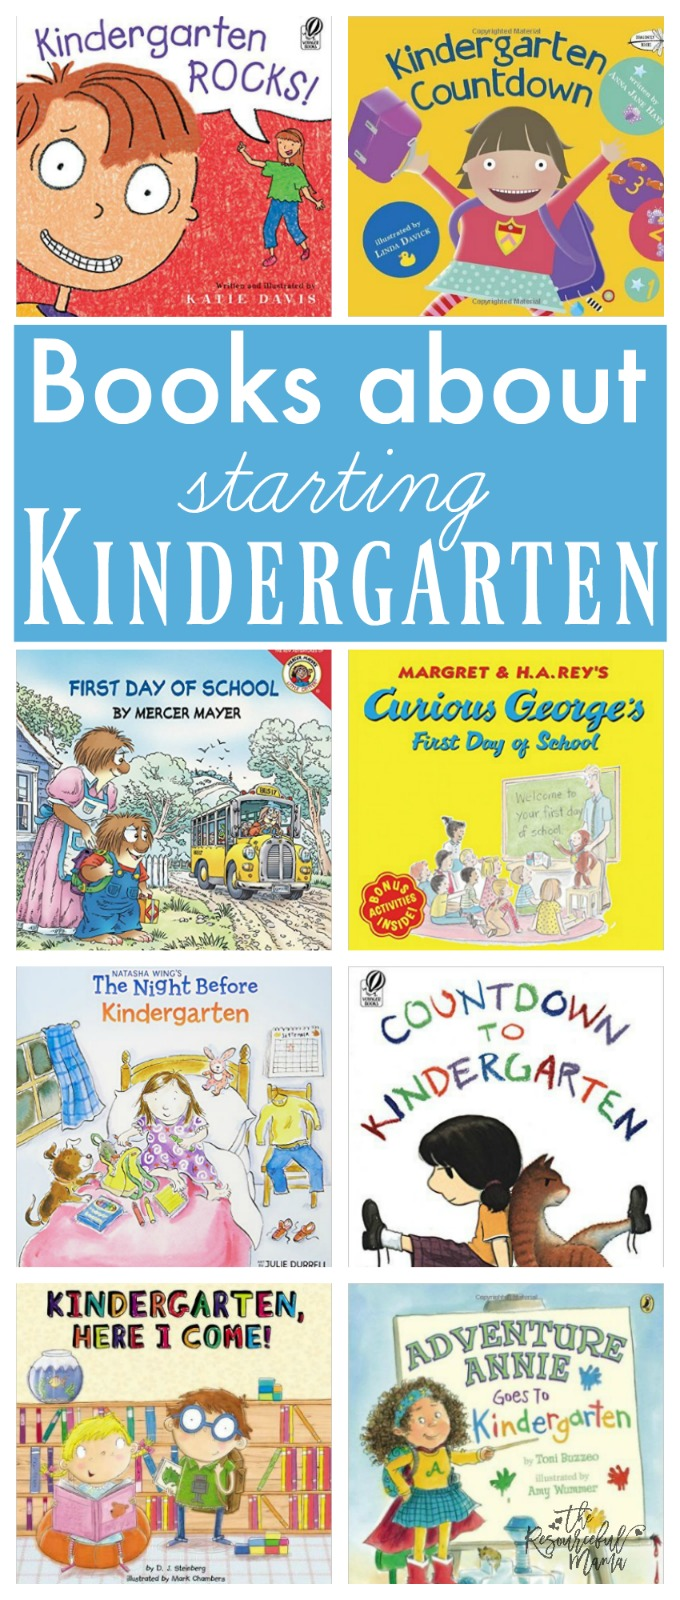 Kids will connect with beloved characters, realize they are not alone with their fears, and get excited about starting kindergarten as they read these kindergaraten books.